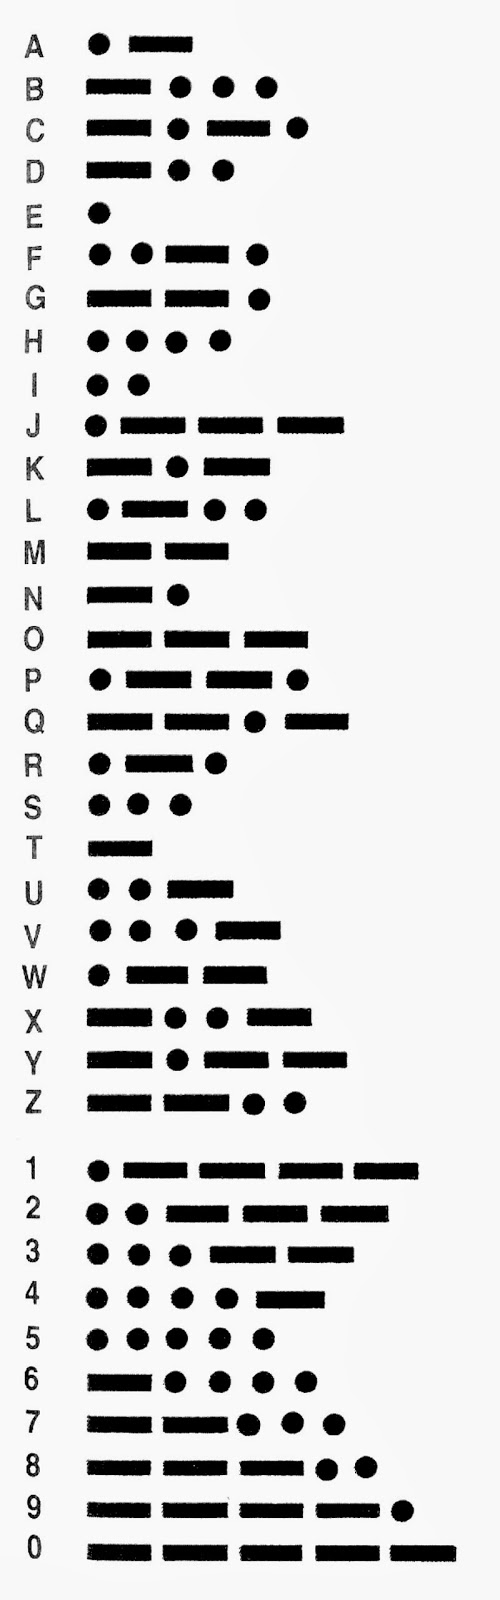 Morse Code for Kids - Electric Telegraph and Morse Code